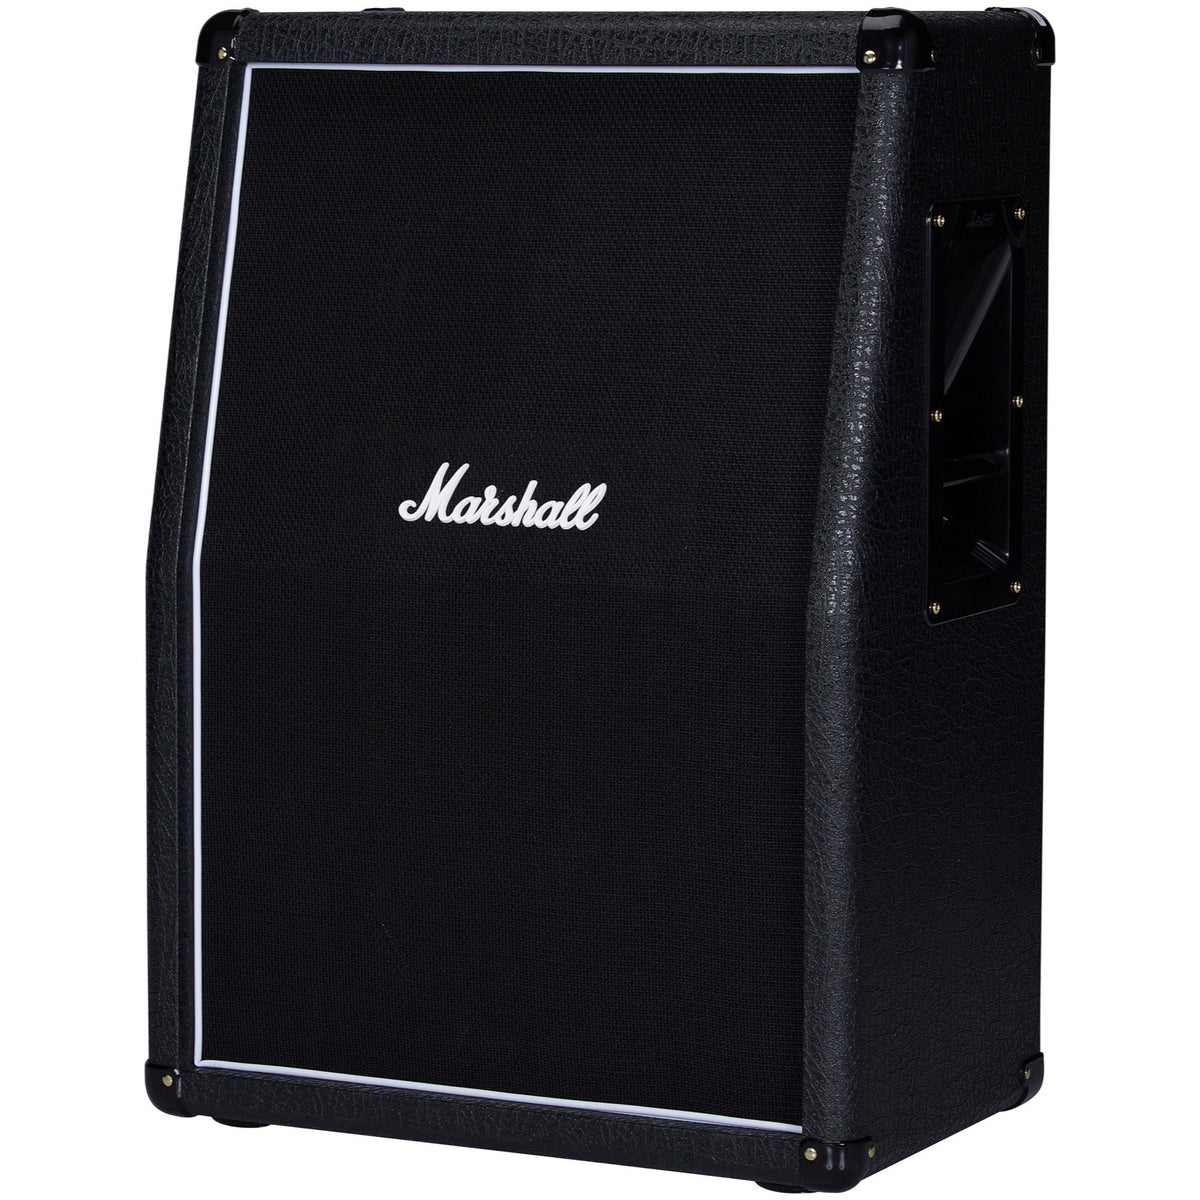 Marshall Studio Classic Guitar Speaker Cabinet (140 Watts, 2x12 Inch), 8 Ohms